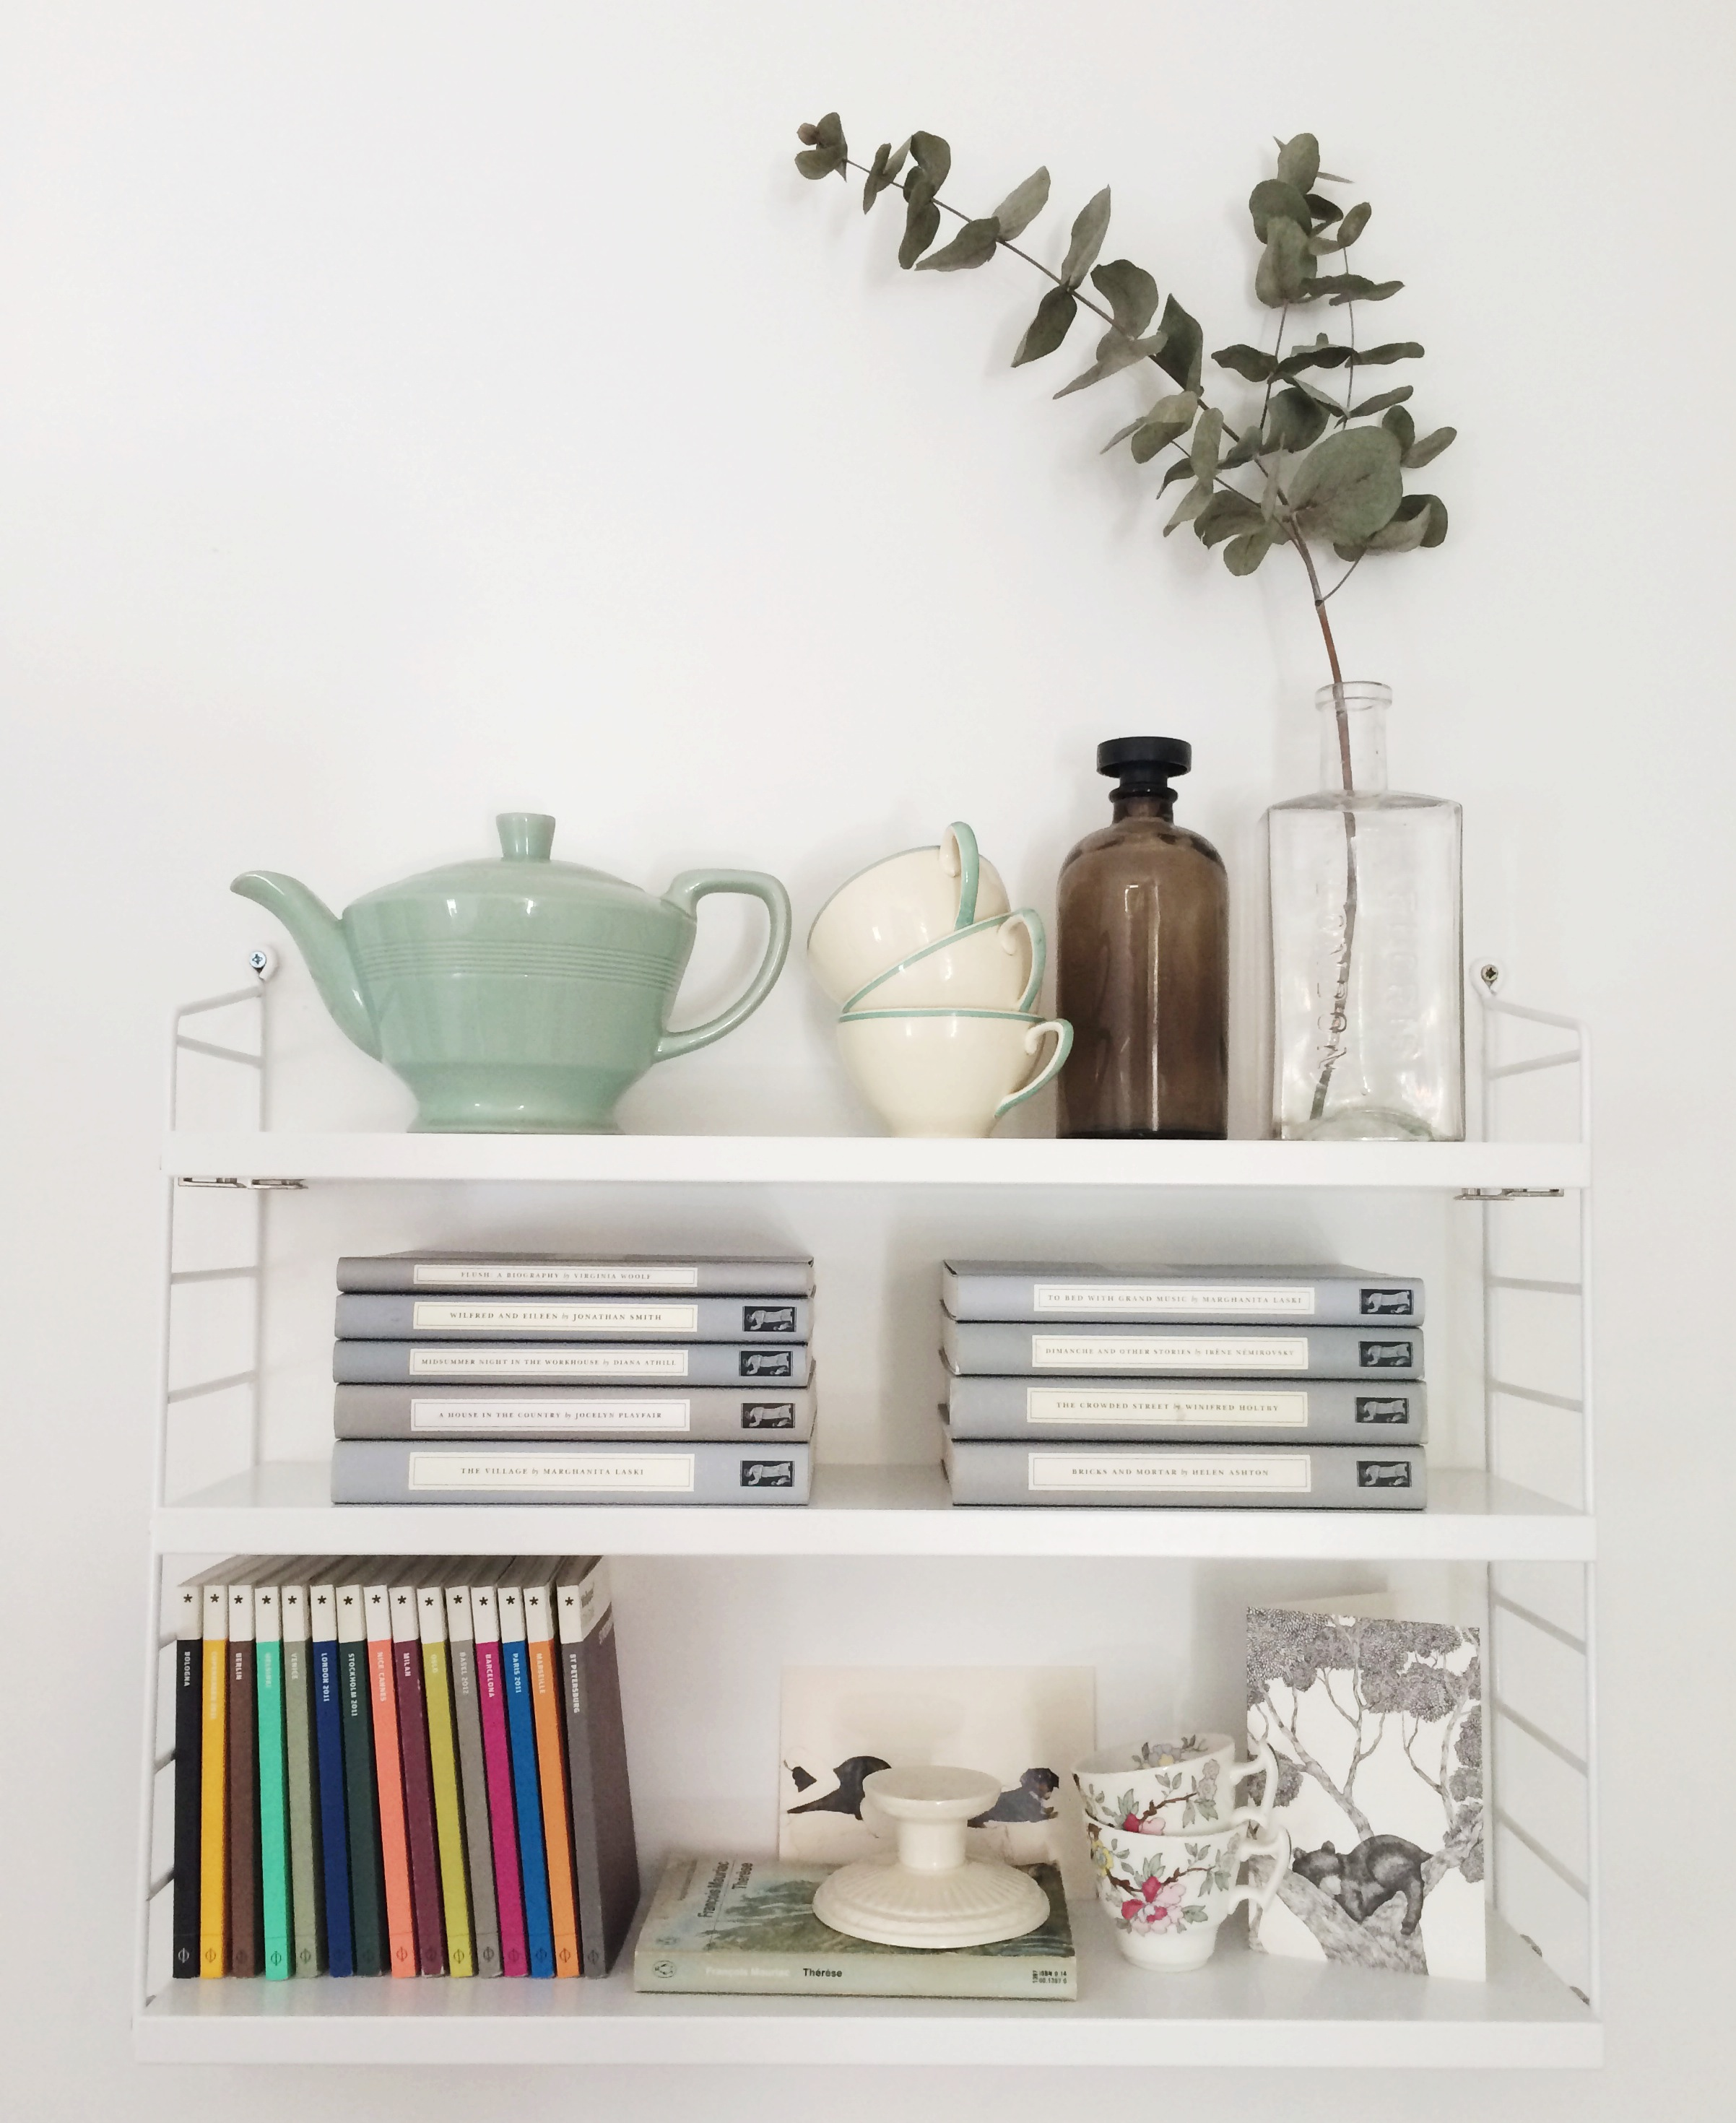 Inspiration Nils Strinnings String Shelving Cate St Hill